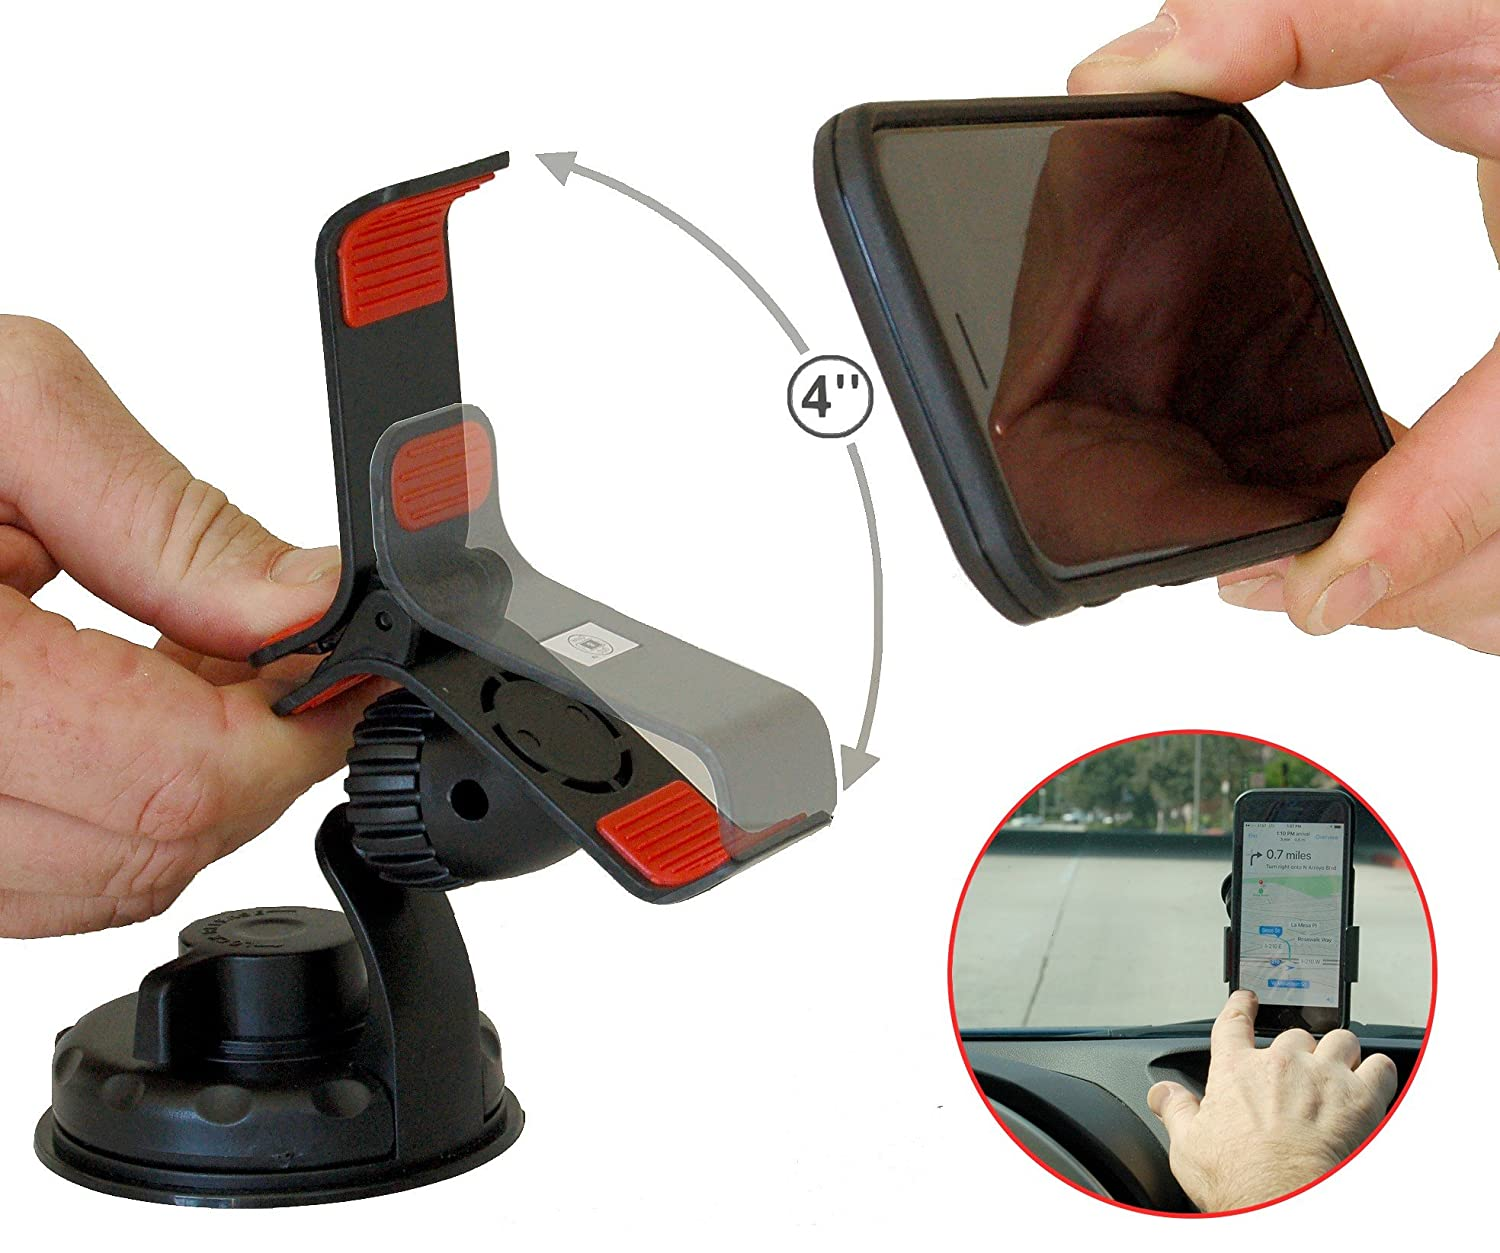 """Car Phone Mount-Smart Phone Holder. Universal Fit for All Phones. The Grip and Drive Mount Fits up to 4"""" Wide. Mount on Dashboard, Windshield and Other flat Smooth Surfaces."""